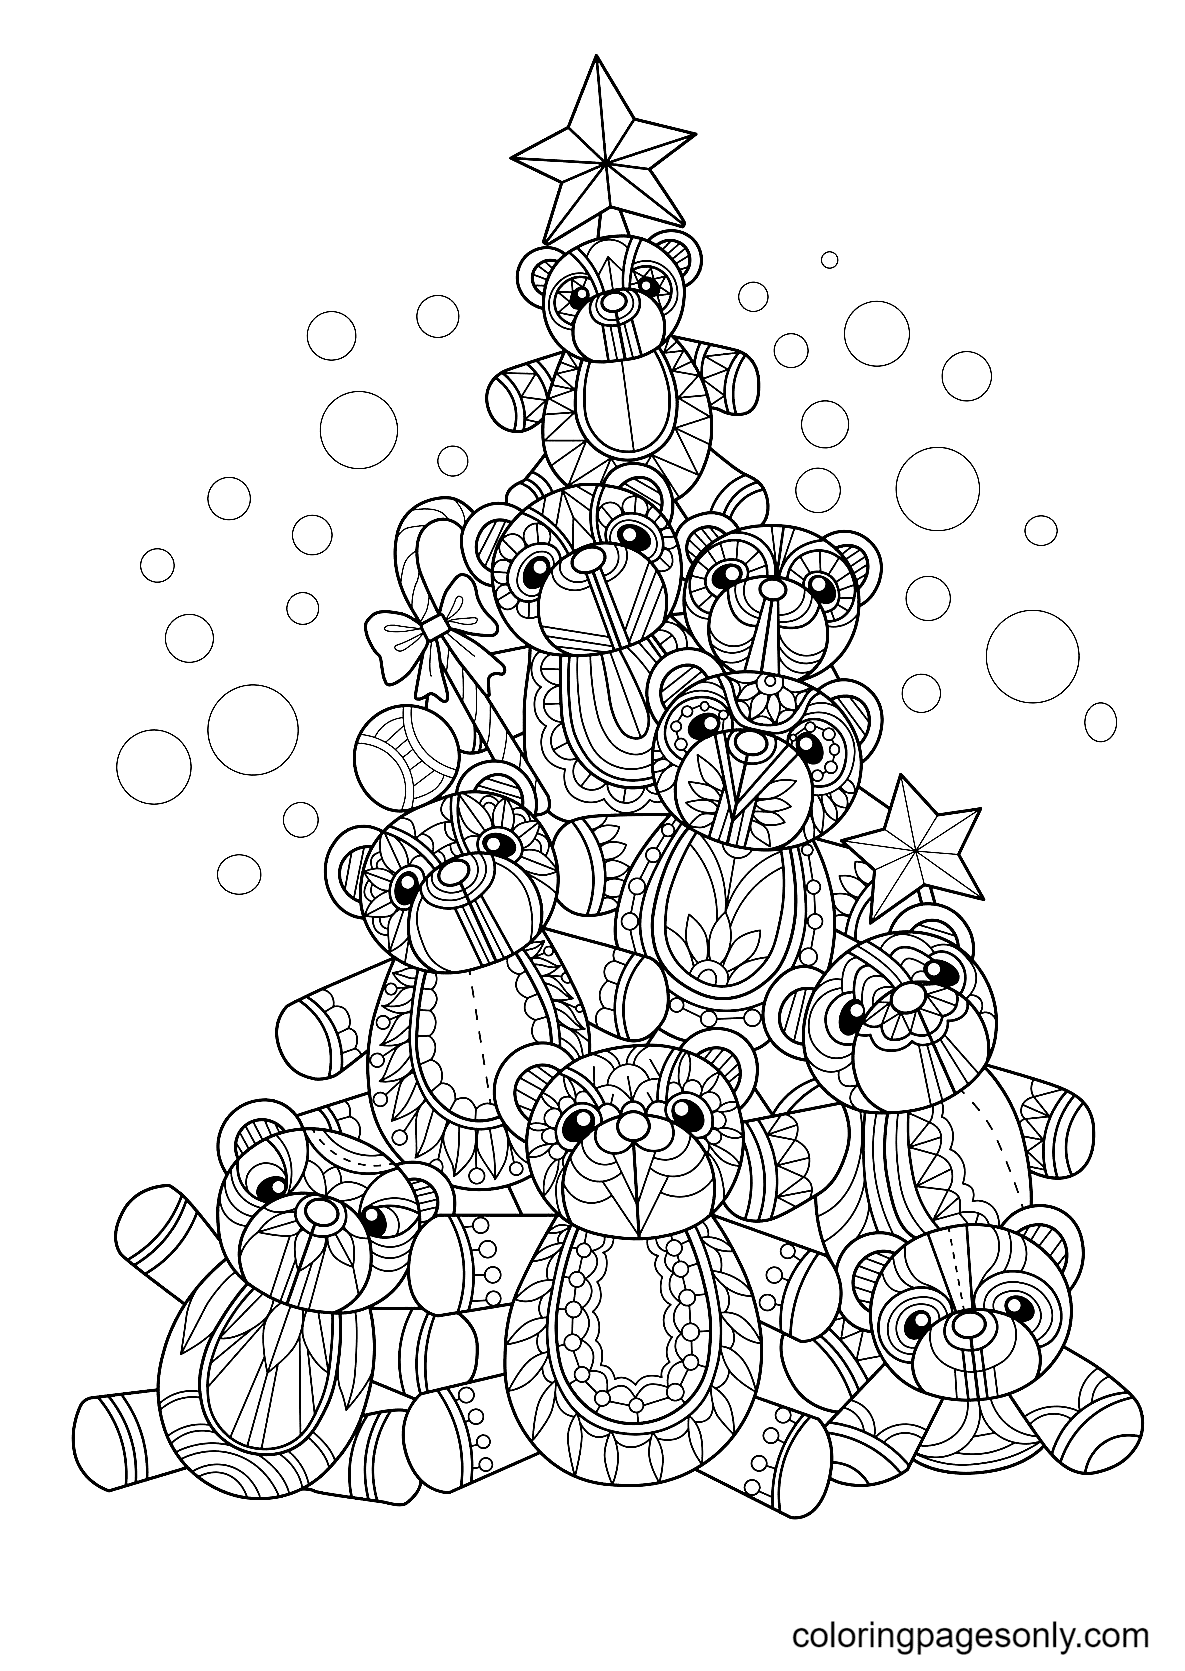 Christmas Tree Made of Teddy Bears Coloring Page